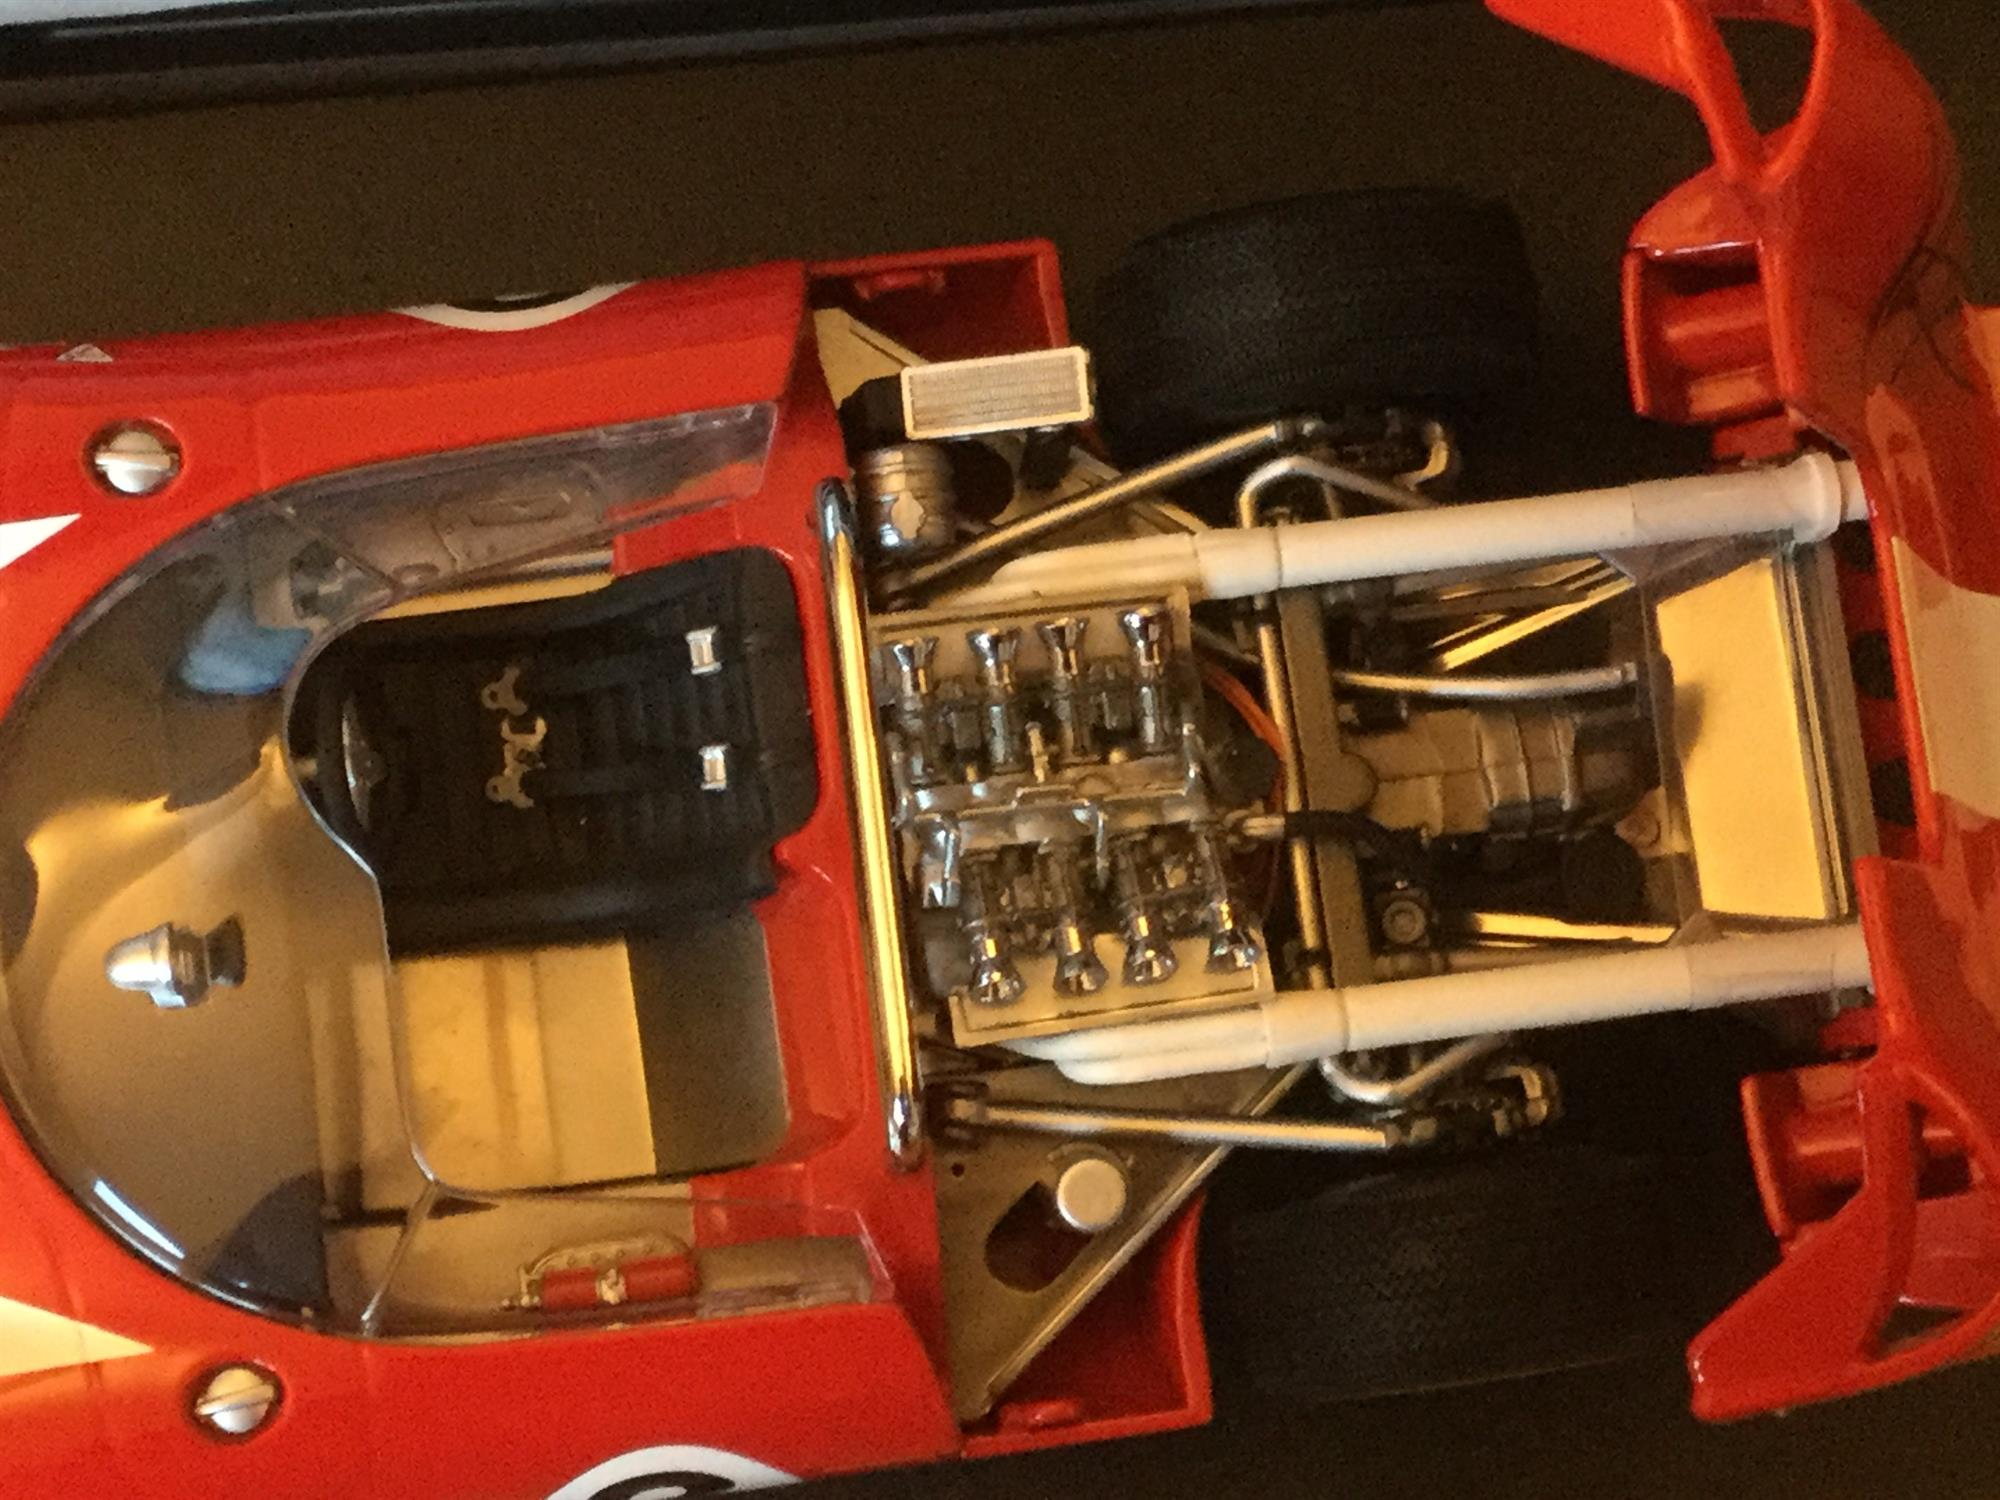 Superb John Surtees Tribute Collection of Models and Memorabilia - Image 7 of 8